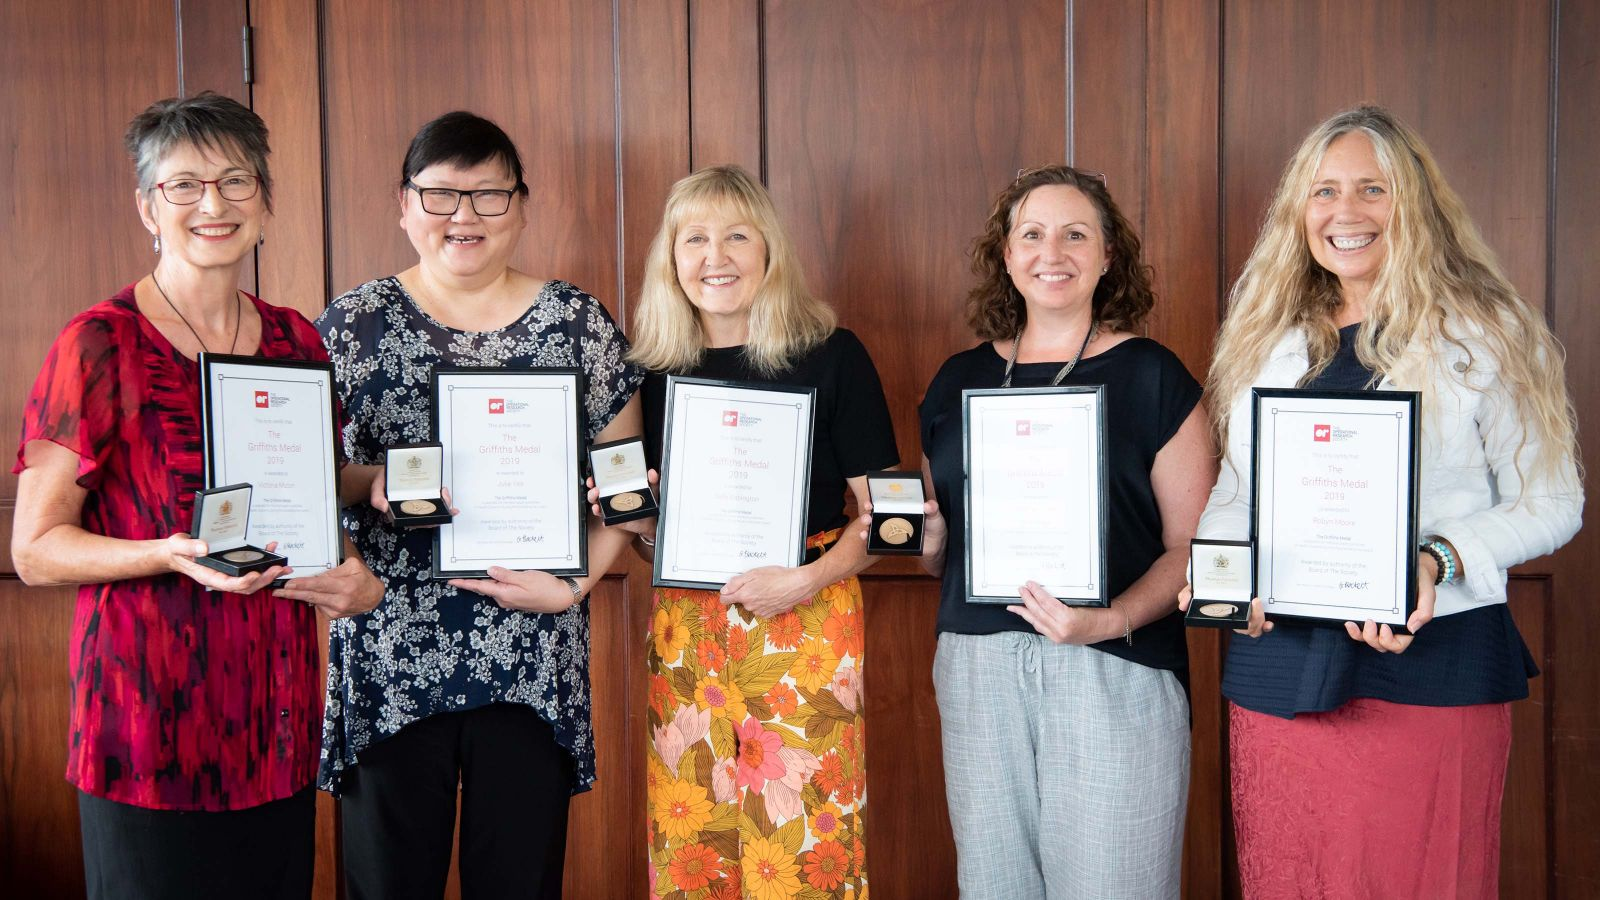 From left: Prof Vicky Mabin, Julie Yee, Sally Babington, Dr Vanessa Caldwell and Robyn Moore, Griffiths Medal winners for 2019.